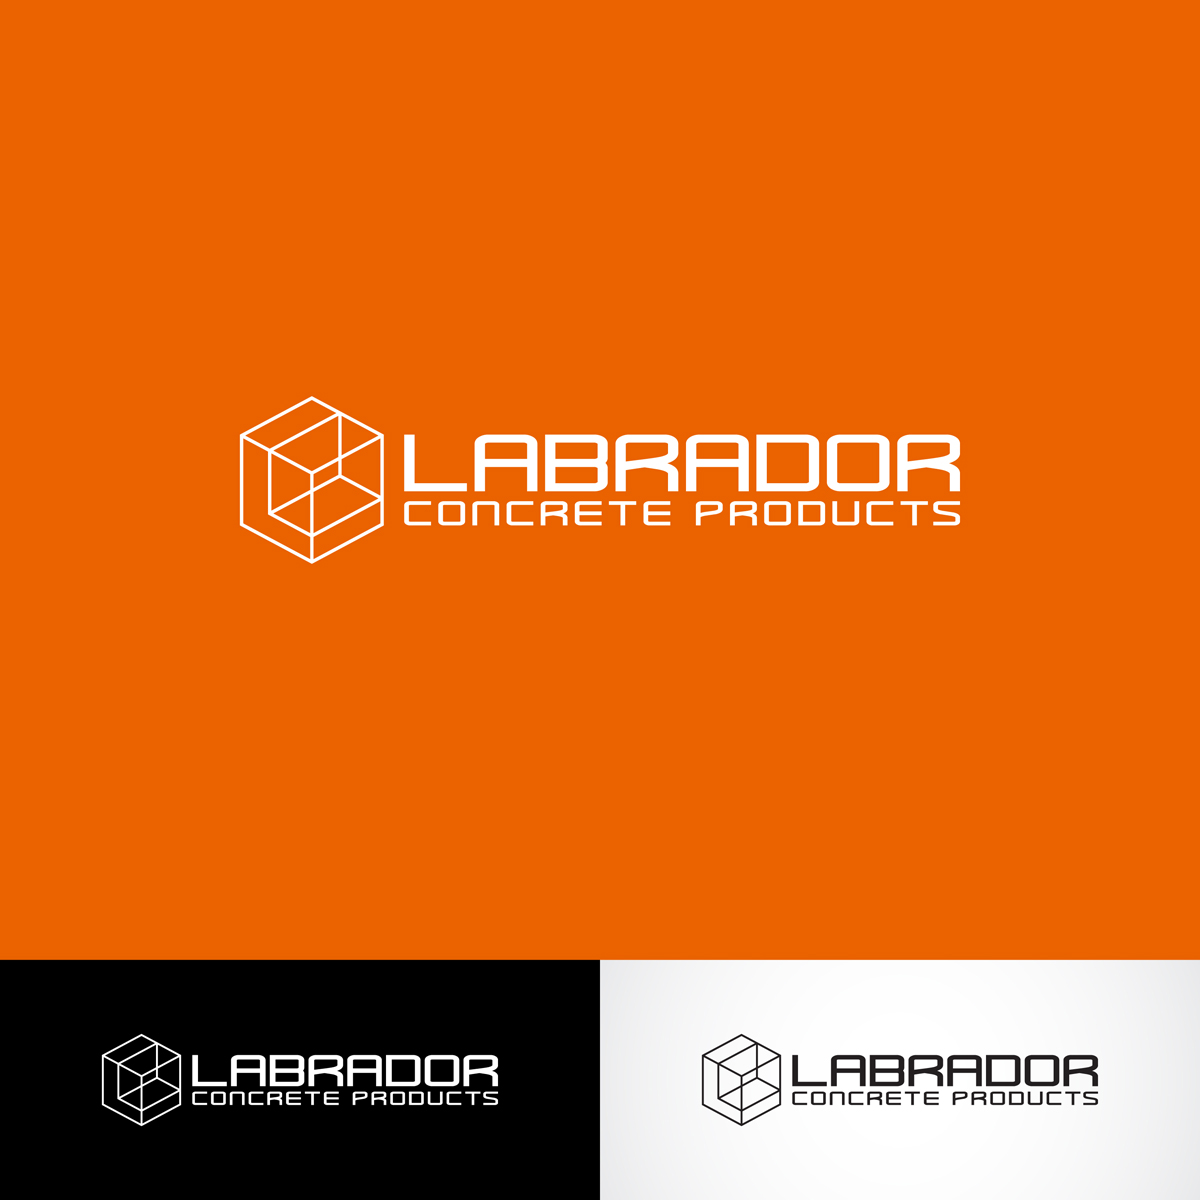 Logo Design by killer_meowmeow - Entry No. 126 in the Logo Design Contest Logo for Labrador Concrete Products.